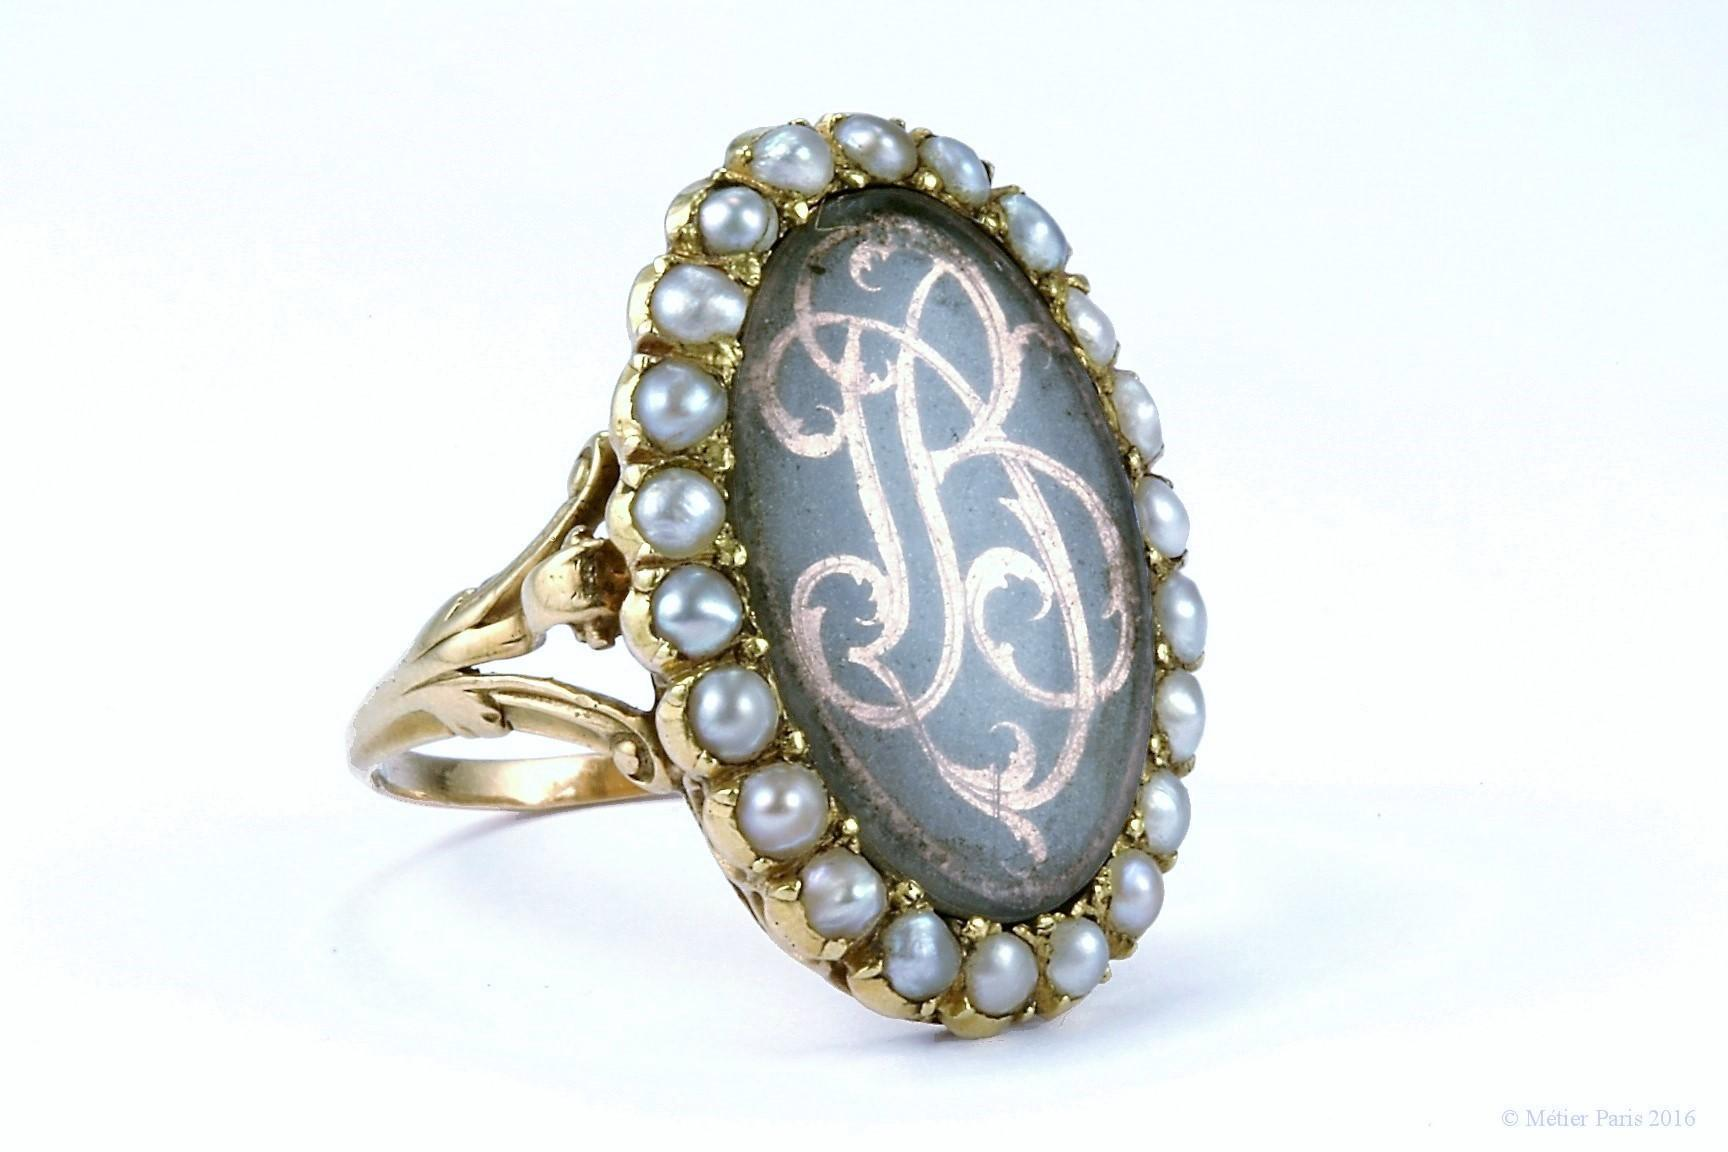 Georgian Sentimental Ring with Gold Cipher Monogram, French c. 1760 - 1790